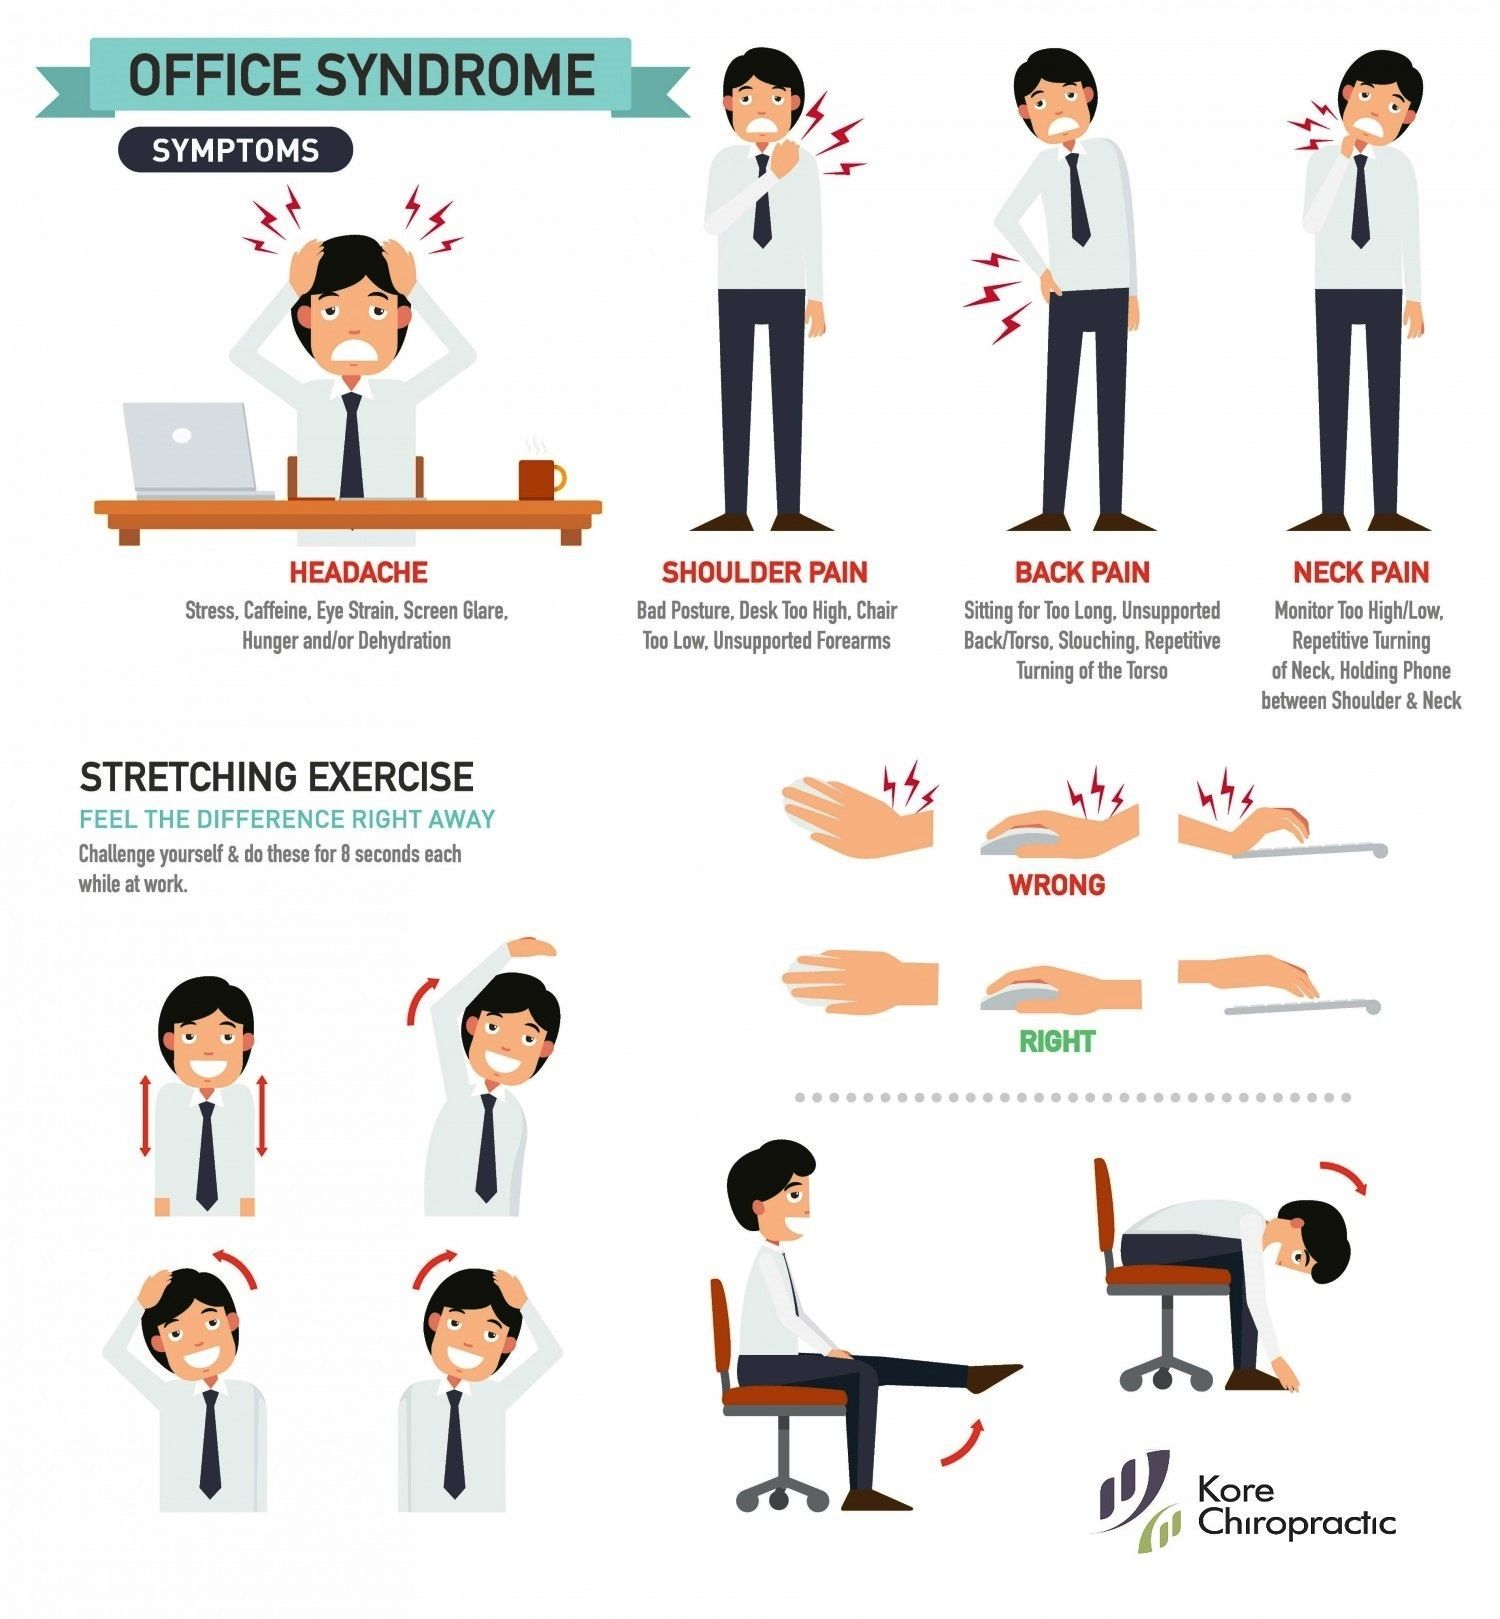 fice Syndrome Symptoms & Stretching Exercise Feel the